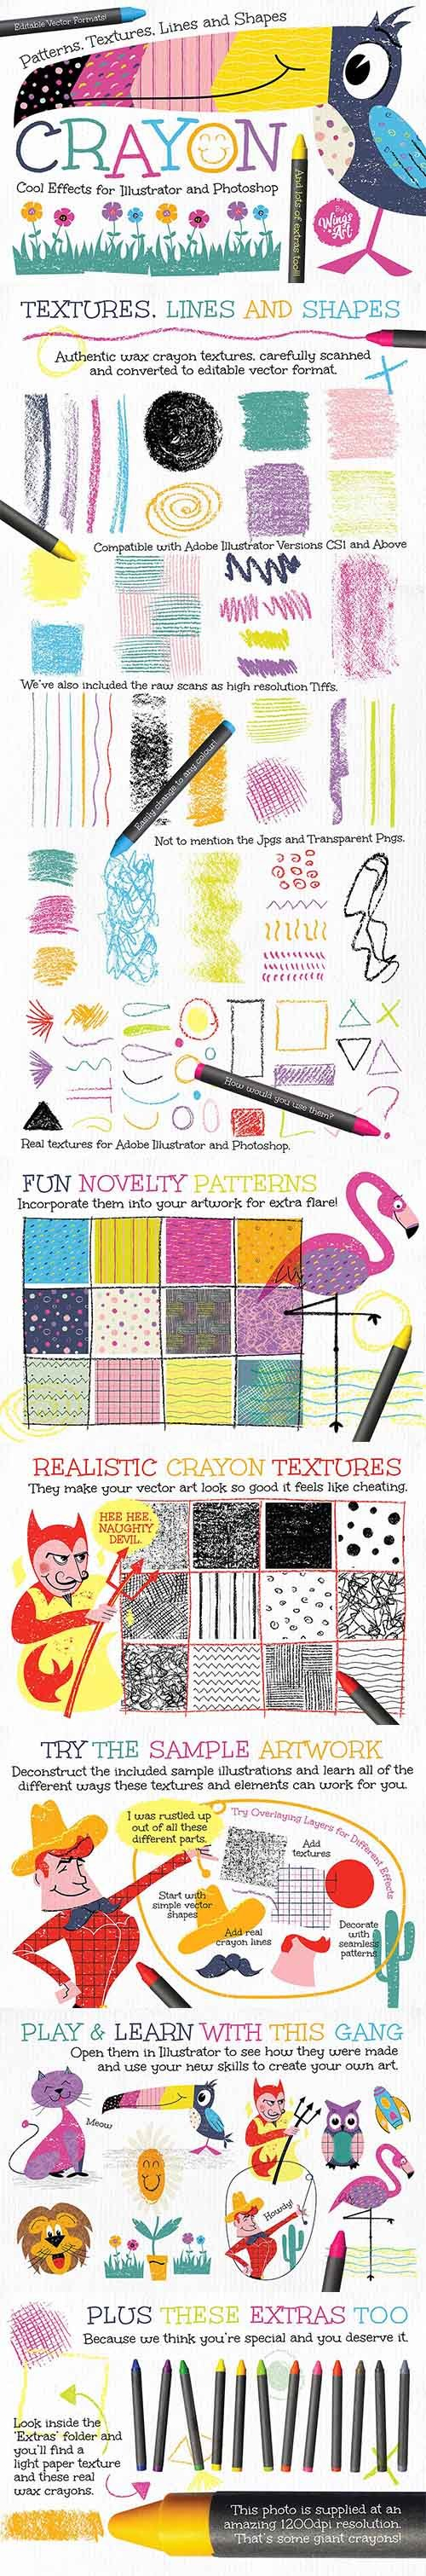 Wax Crayon Patterns and Textures - CM 1409141